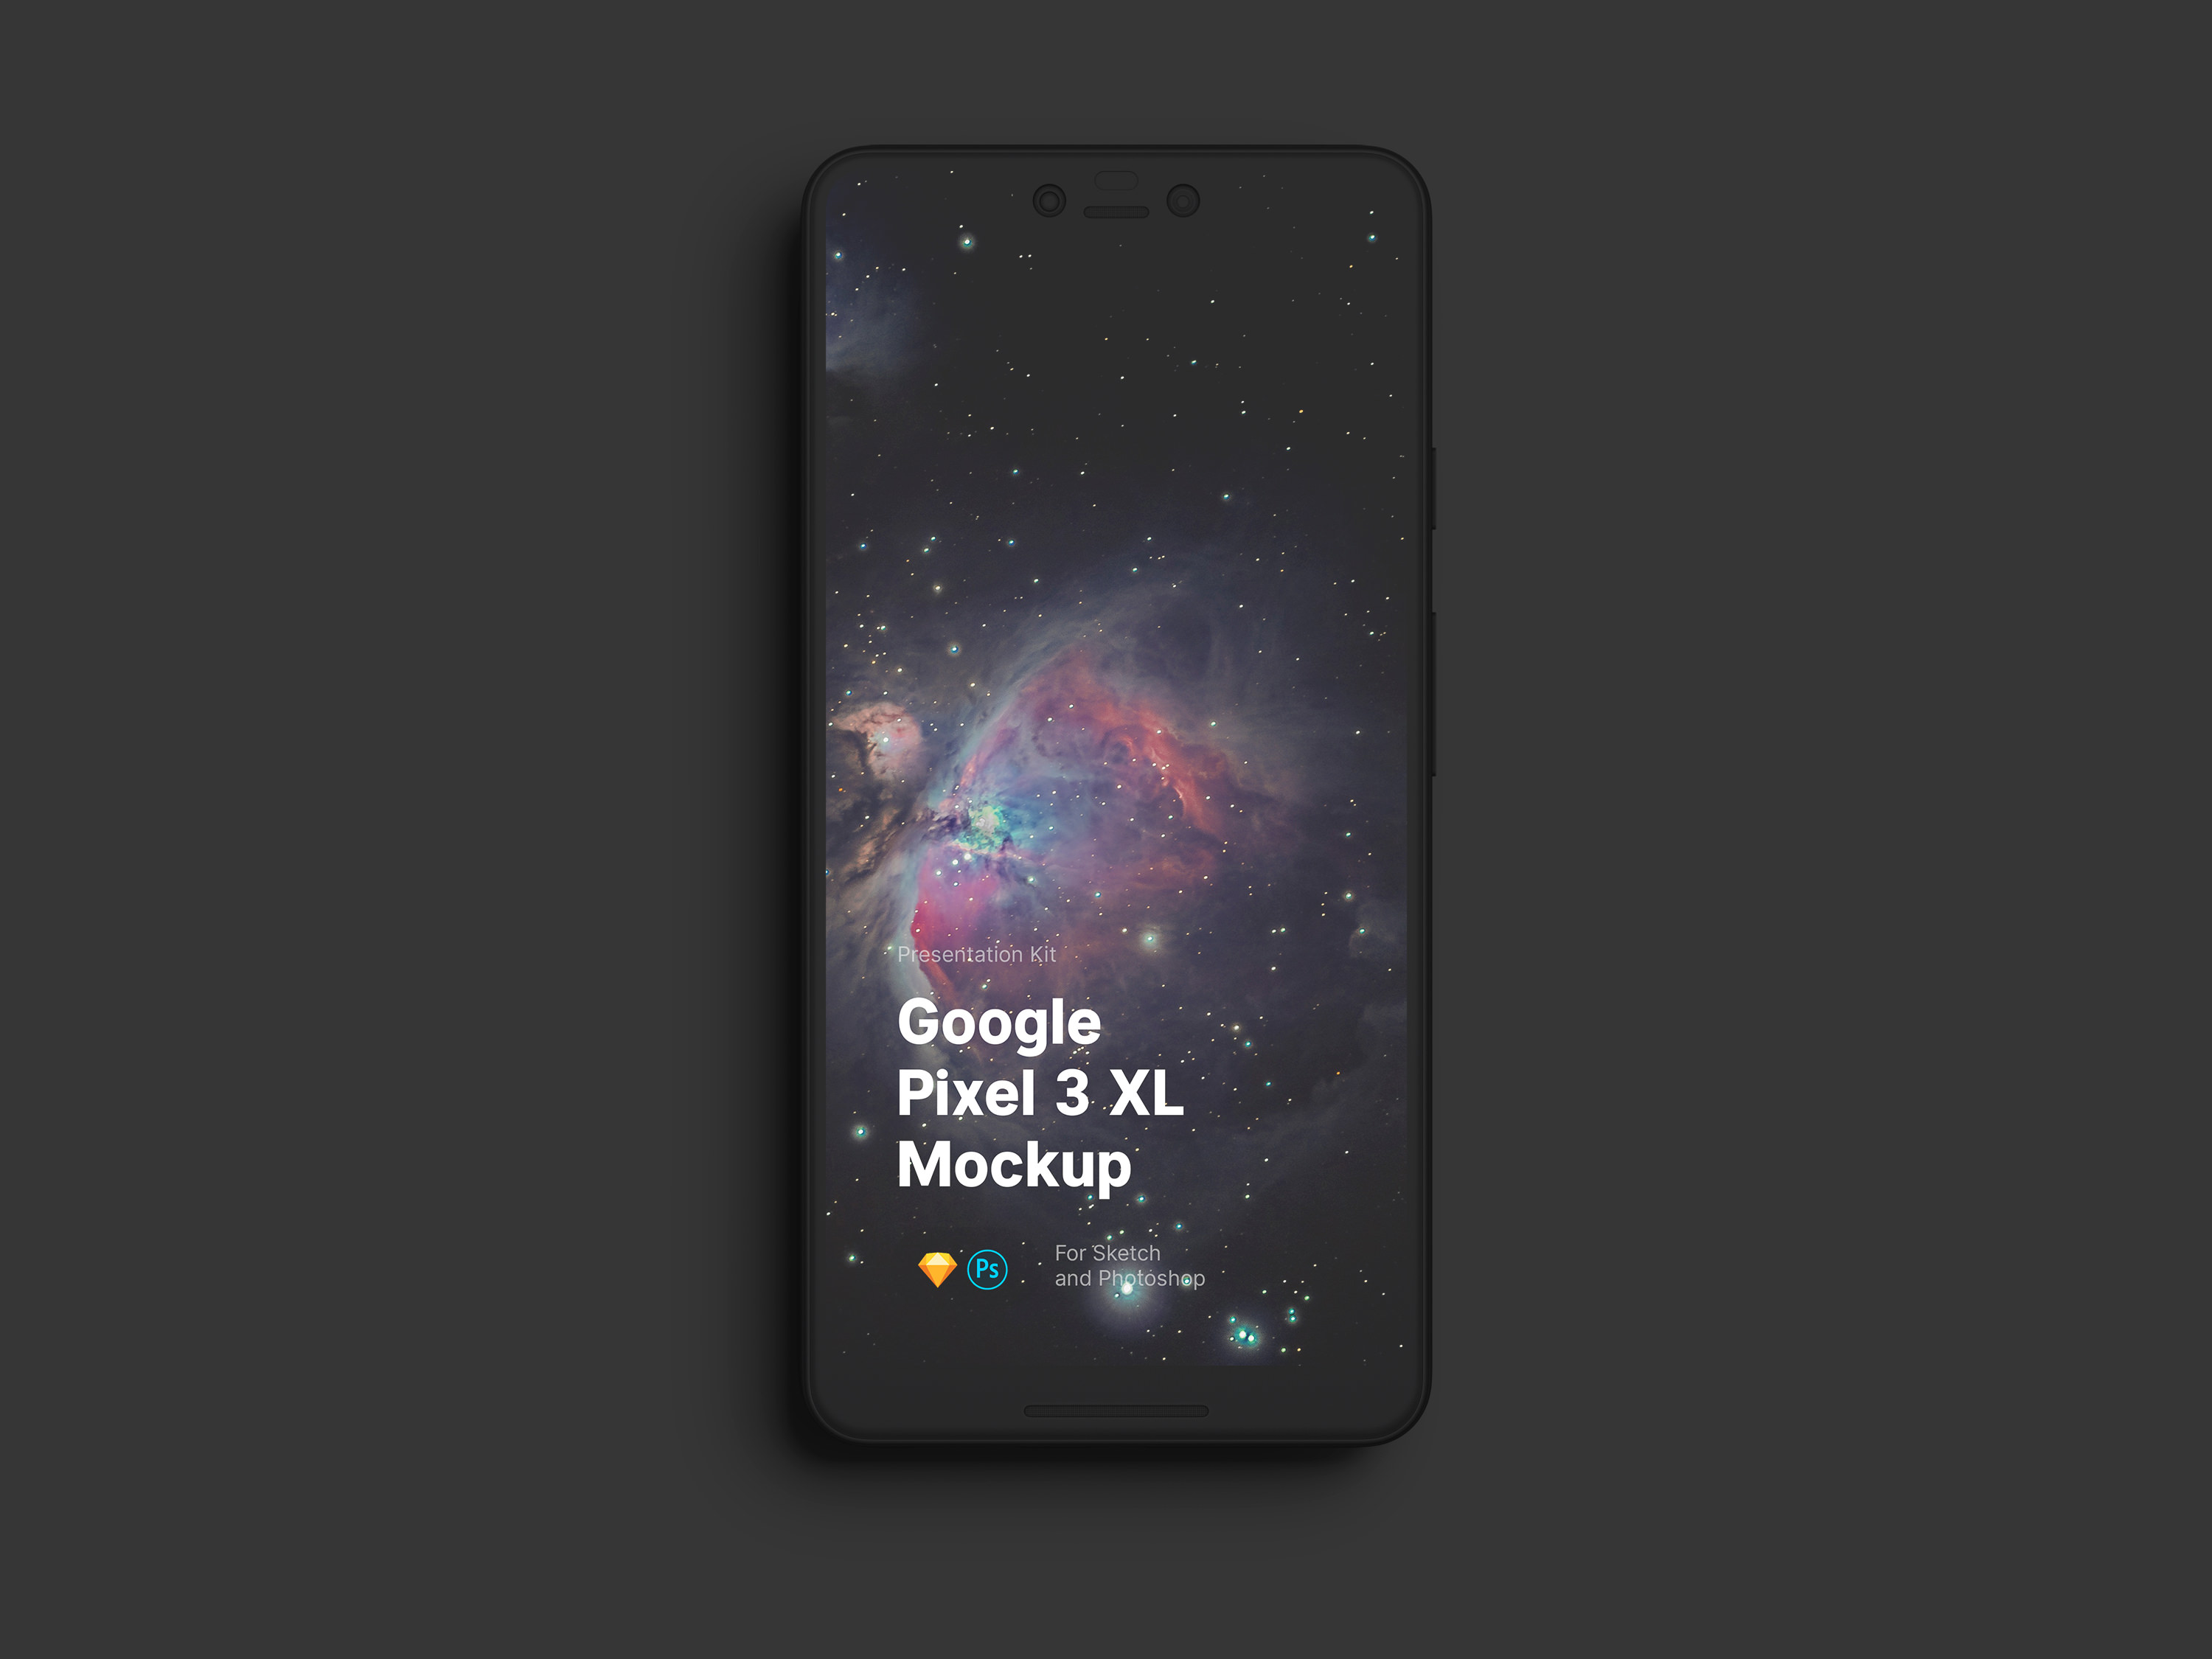 Download Google Pixel 3 XL or Sketch and Photoshop